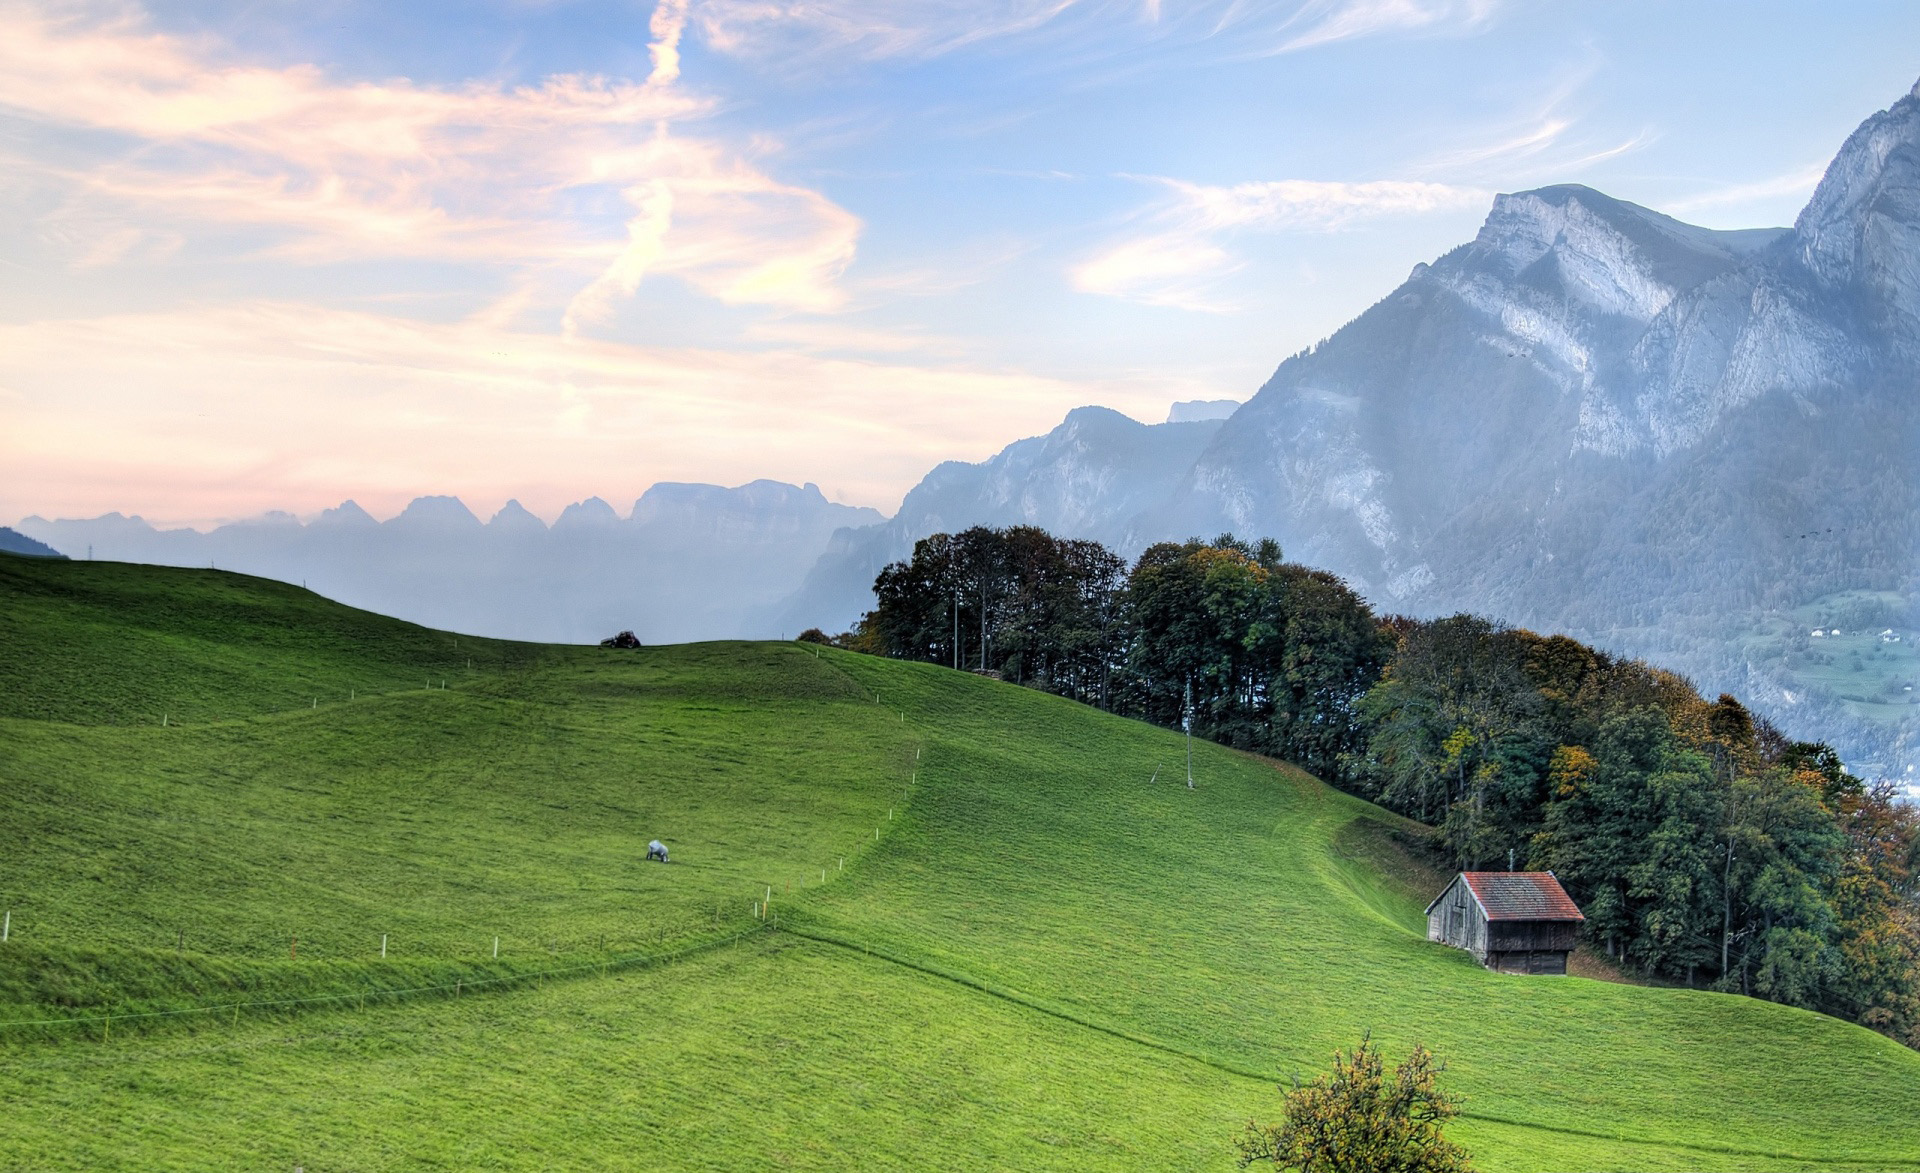 mountain-pasture-wallpaper-nature-landscapes-photography-beautiful-house-green-hills